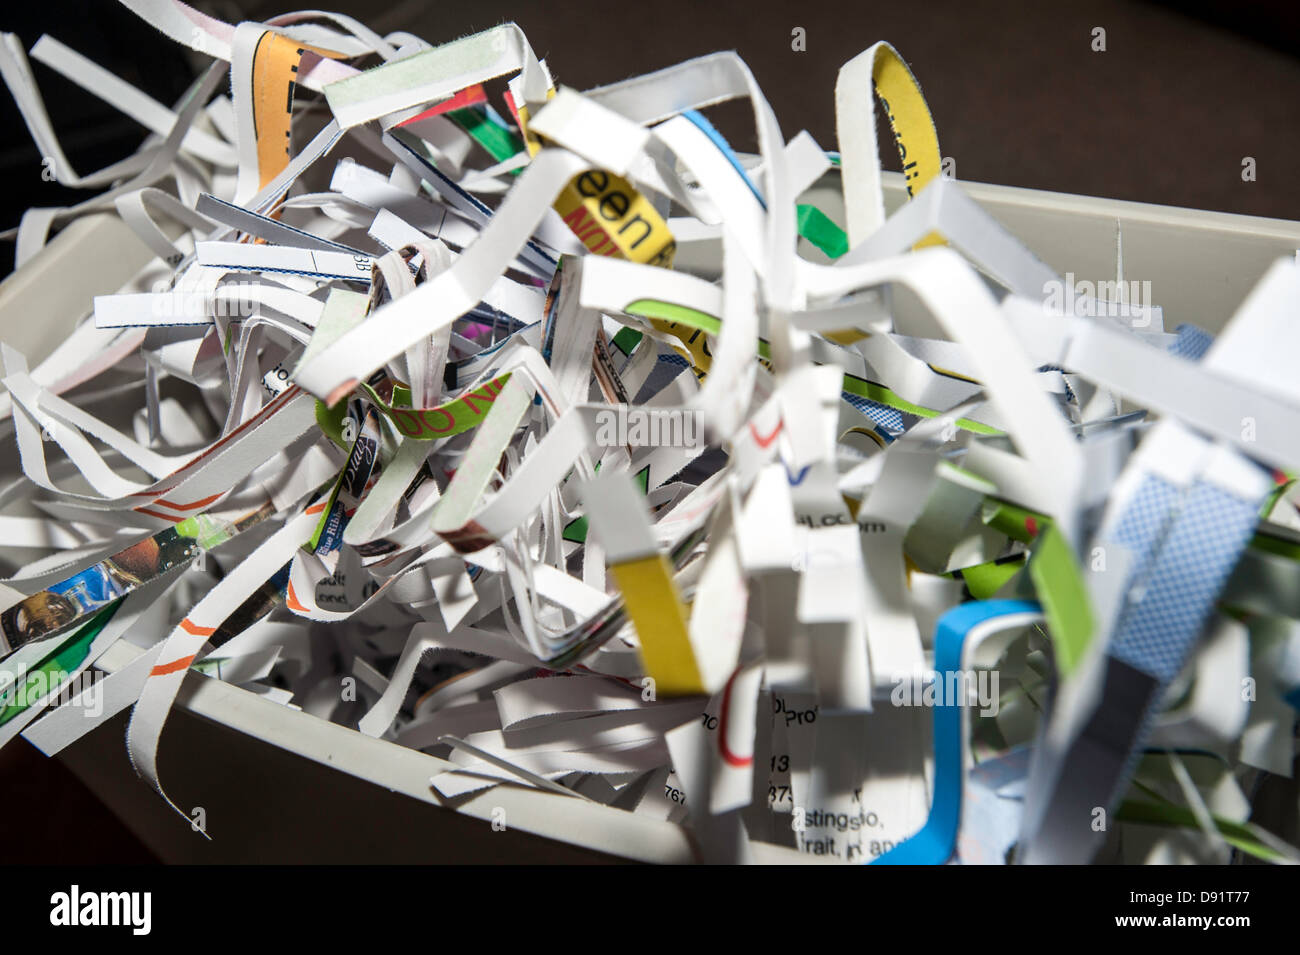 recycling shred shredder shredding documents - Stock Image